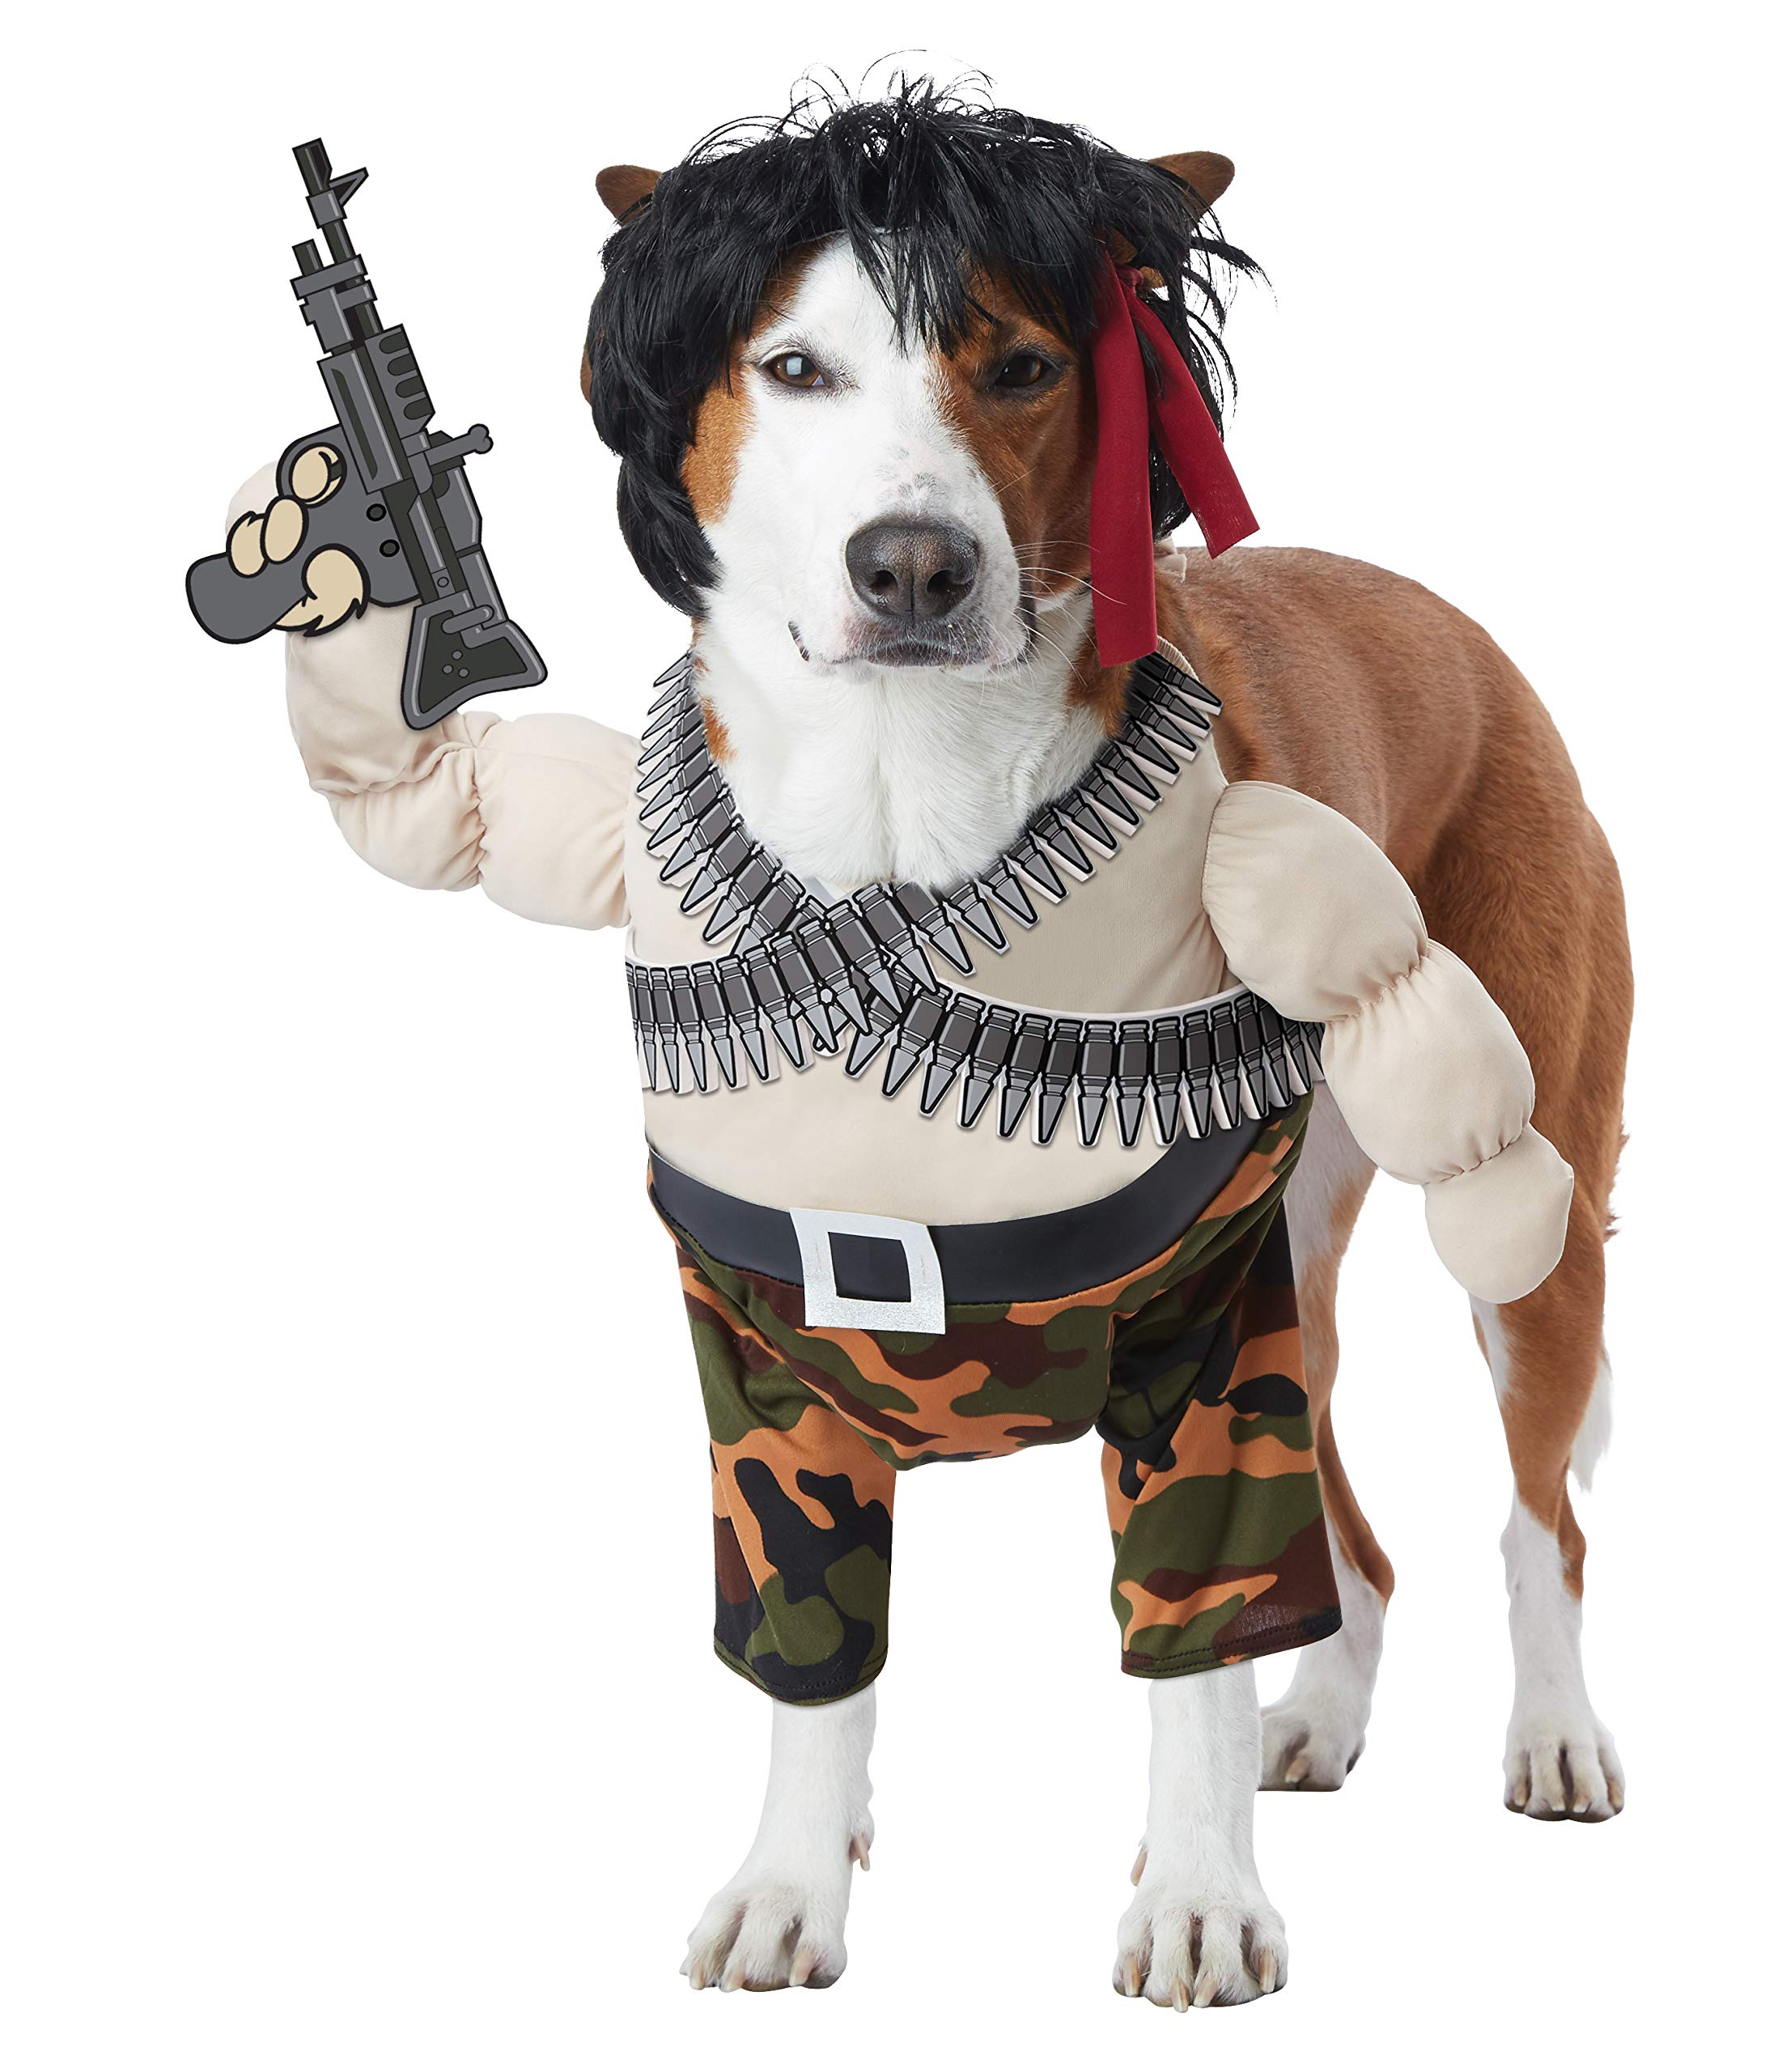 California Costumes Action Hero Dog Costumes, Pet, Multi, Large by CALIFORNIA COSTUME COLLECTIONS